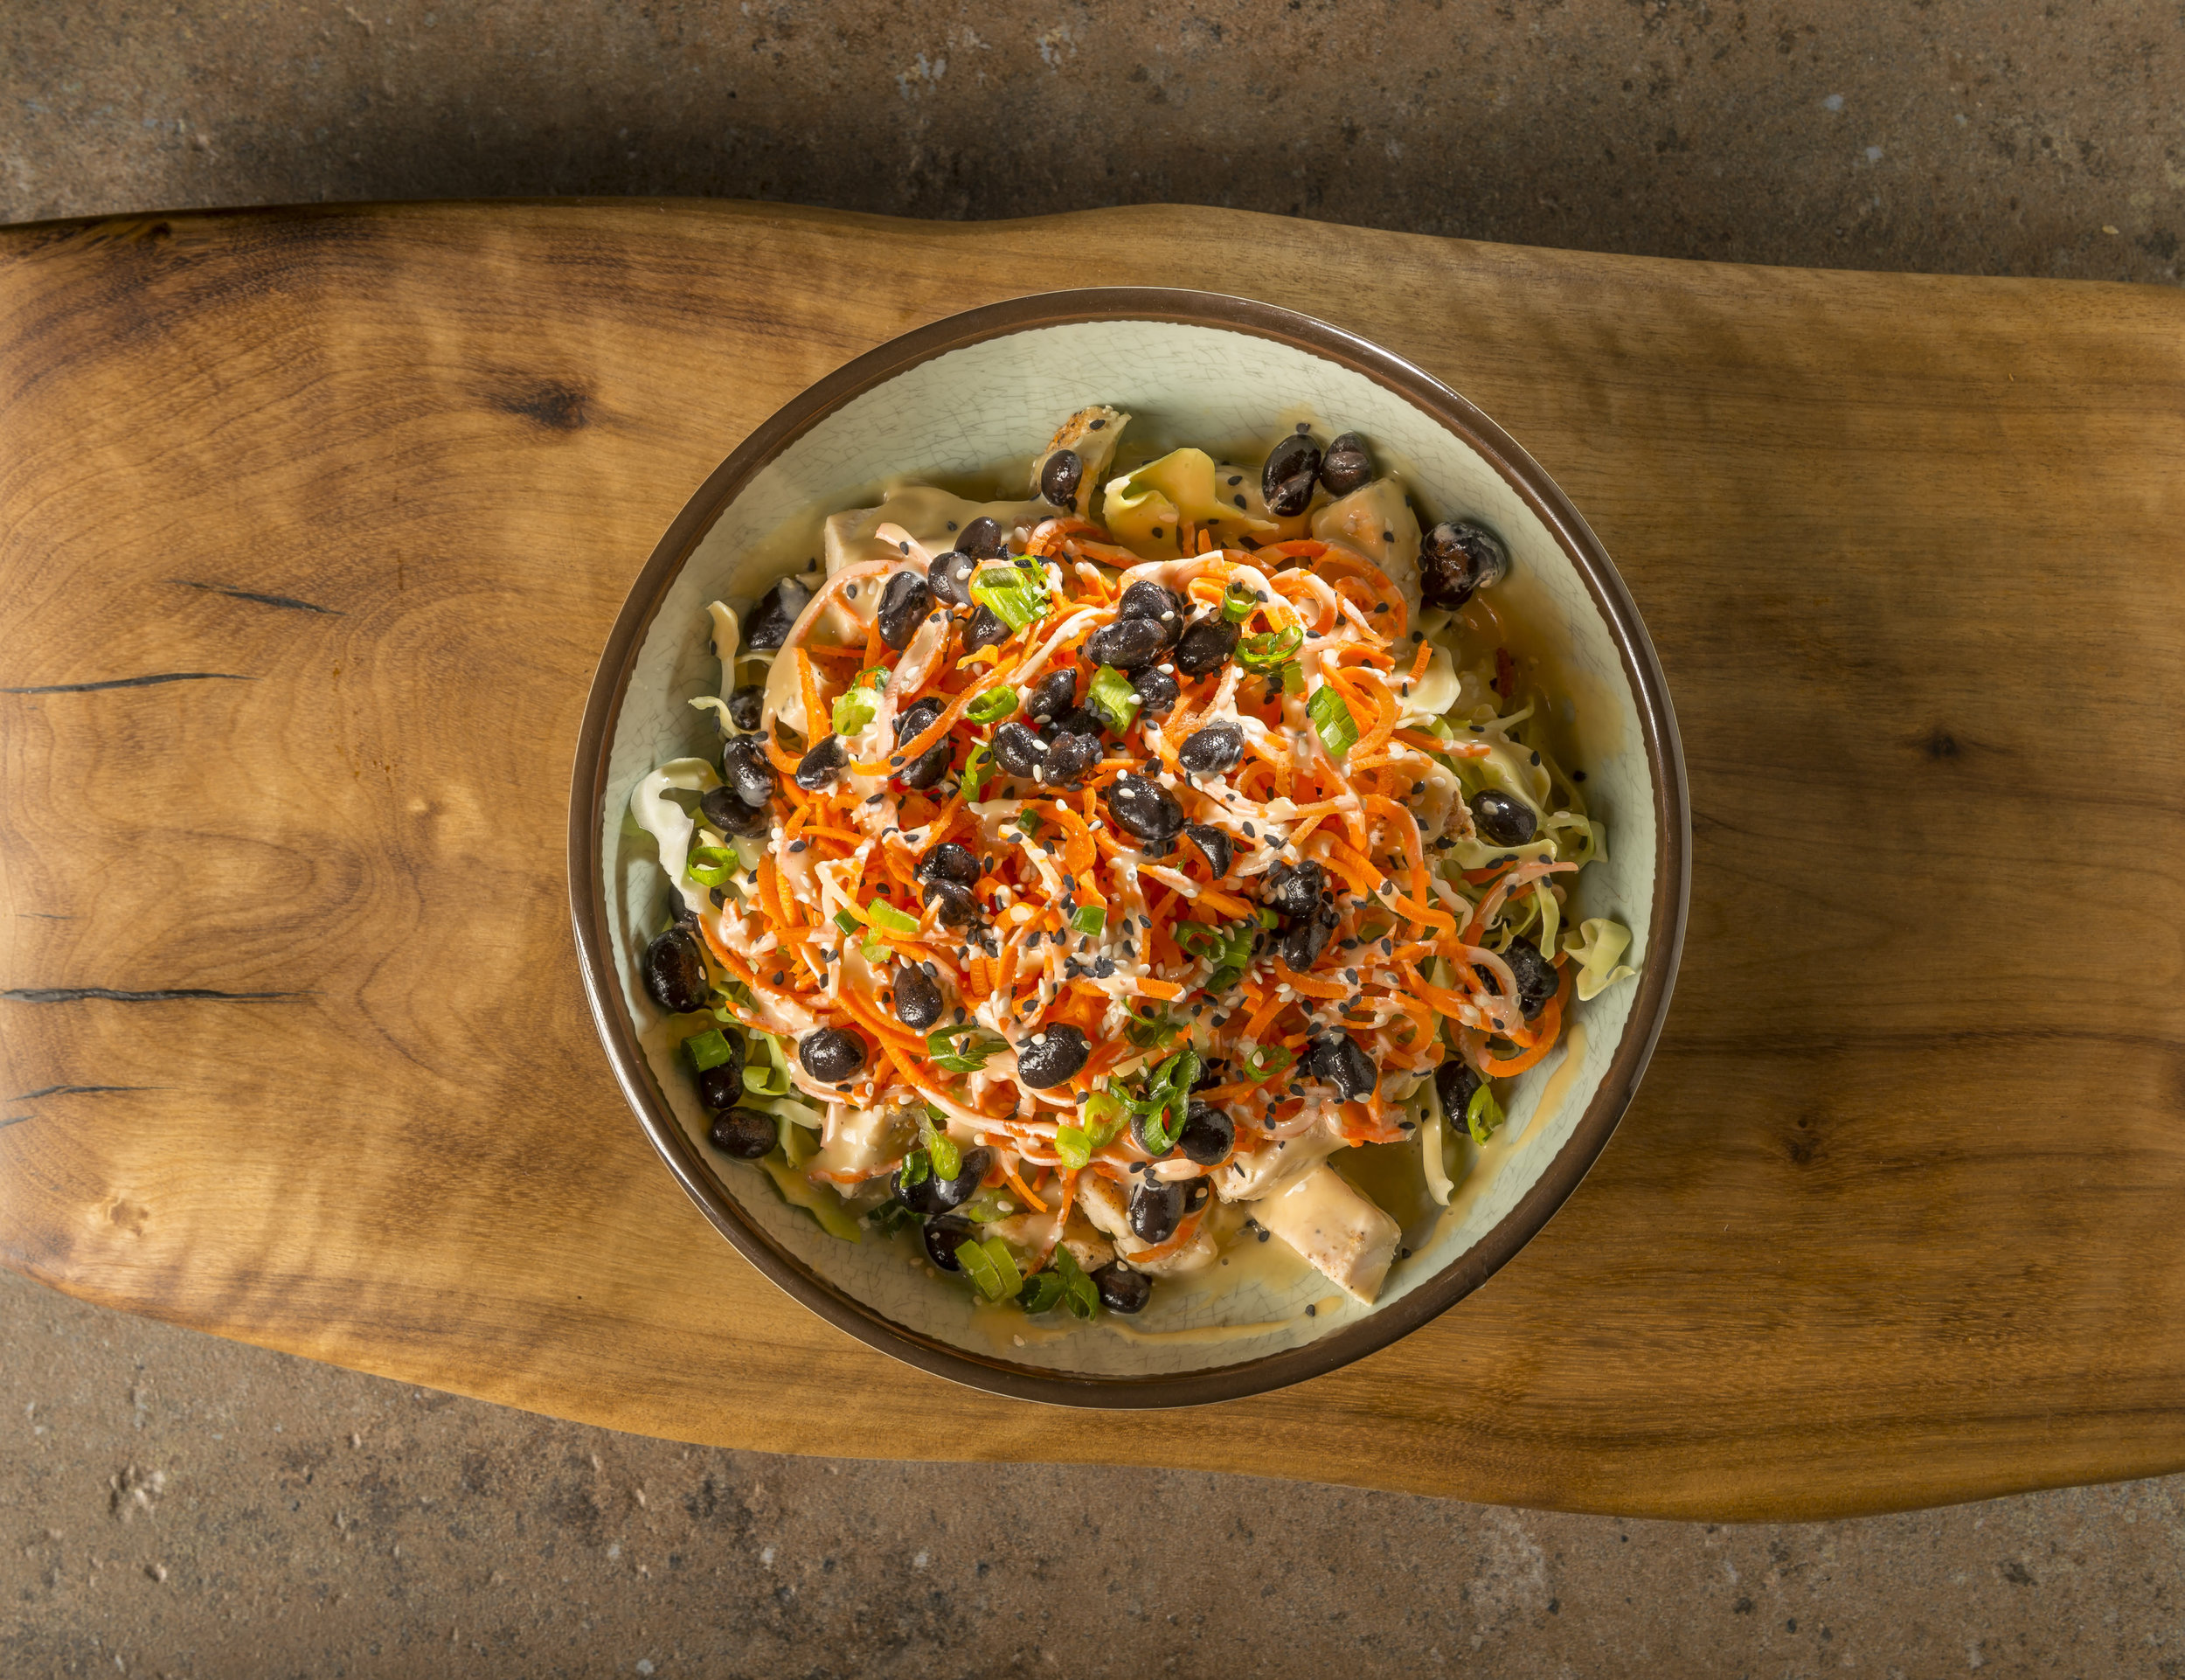 Chi Bowl - Choice of chicken or tofu, cabbage, carrots, black beans, green onions, sesame seeds, and house-made umami sauce.$9.59